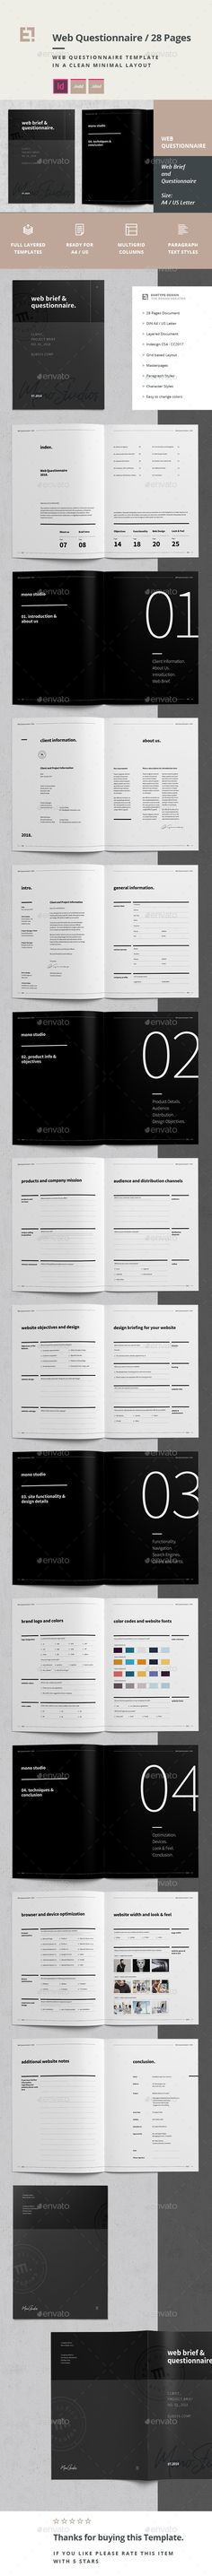 brochure questionnaire sample